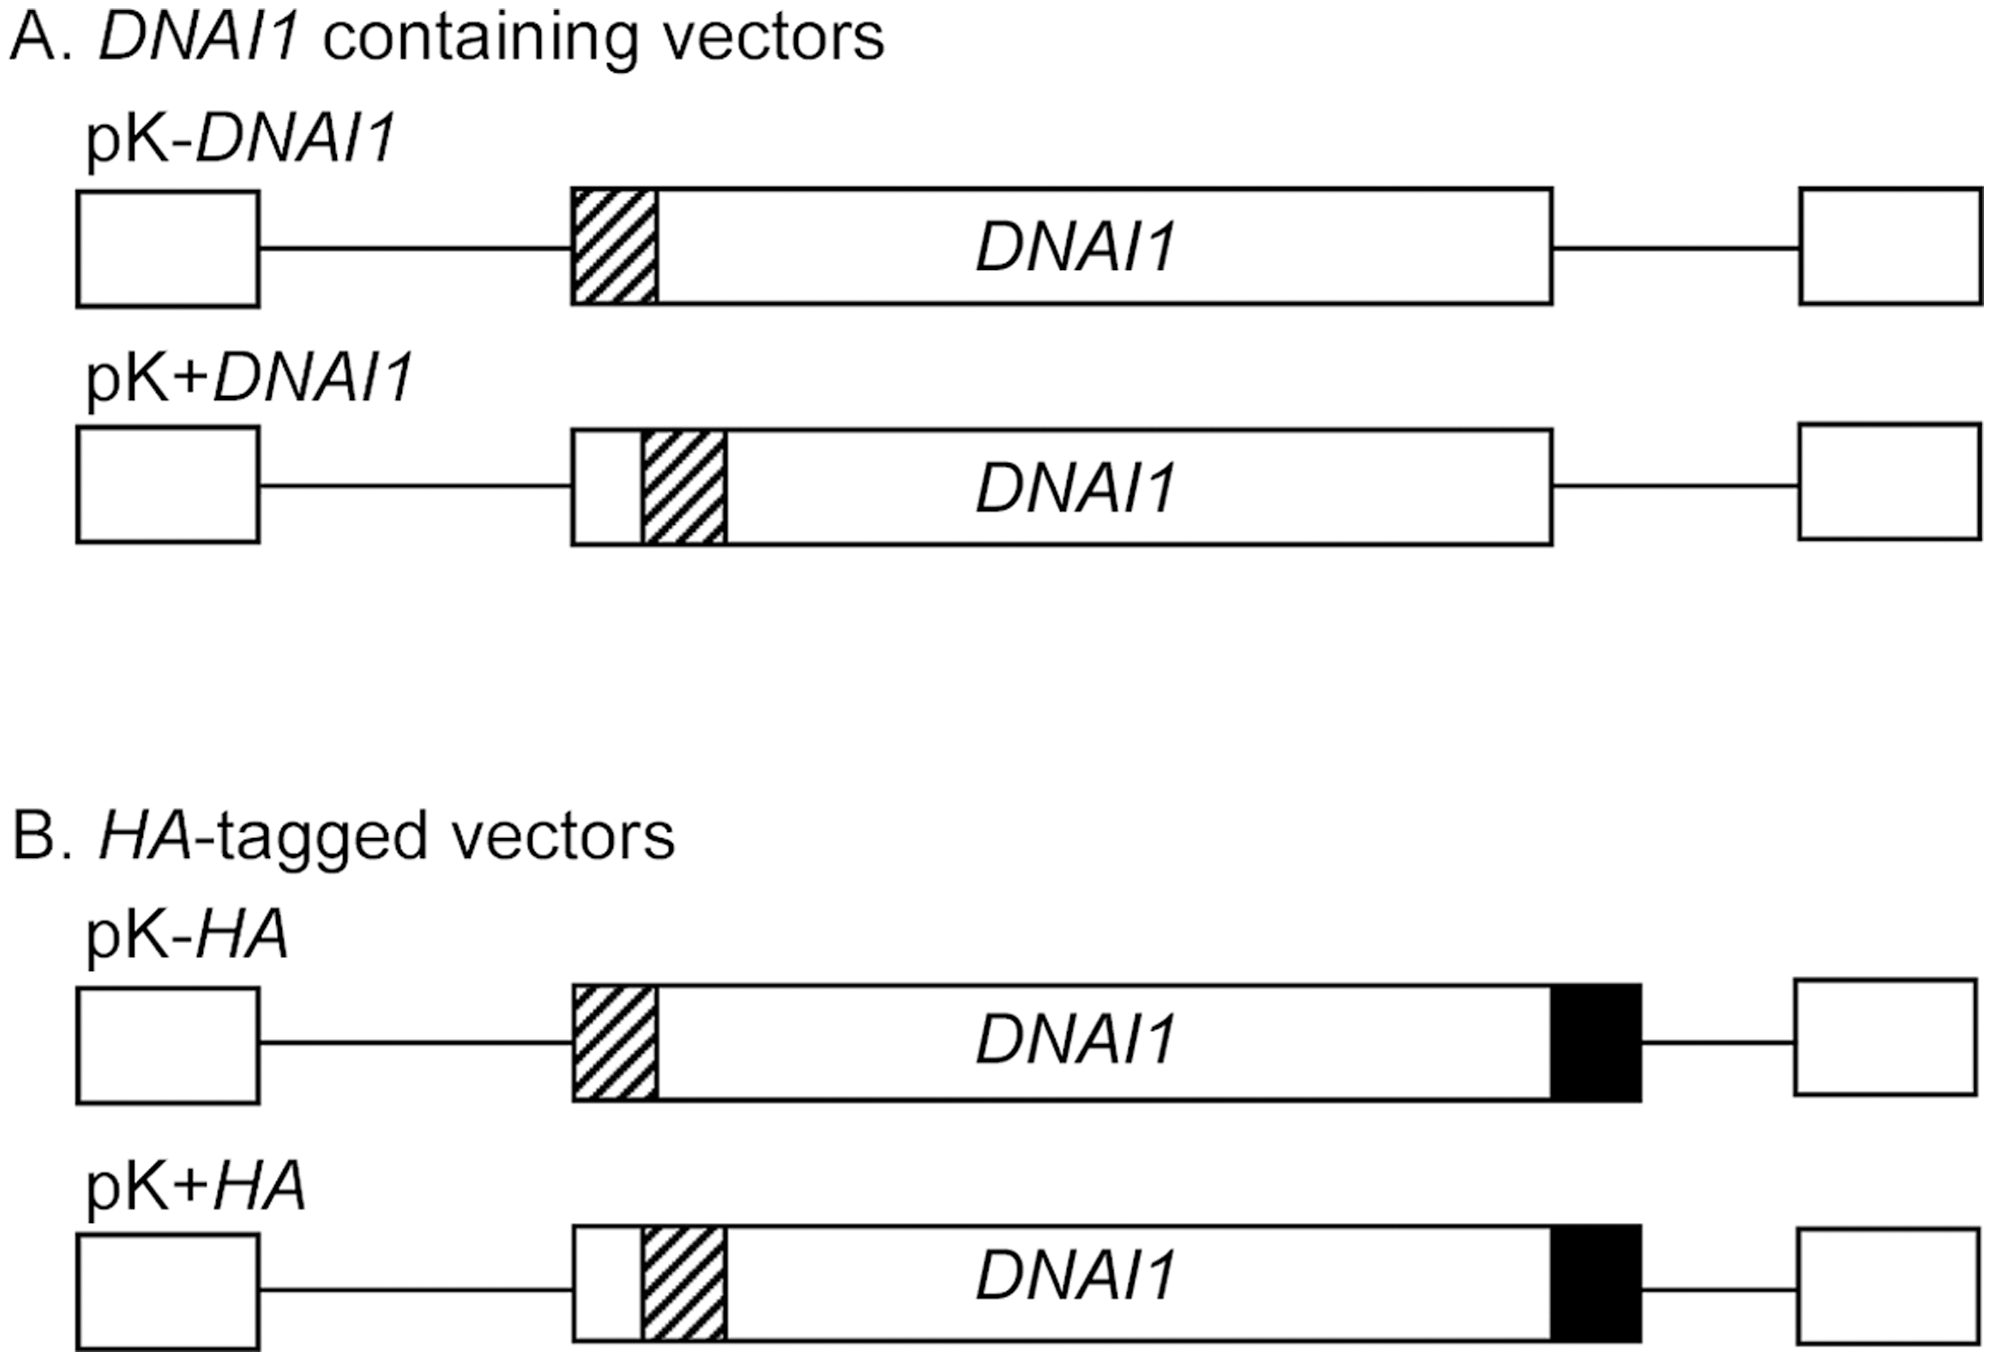 Lentiviral vectors containing <i>DNAI1</i> cDNA sequence with or without <i>HA</i> tag.